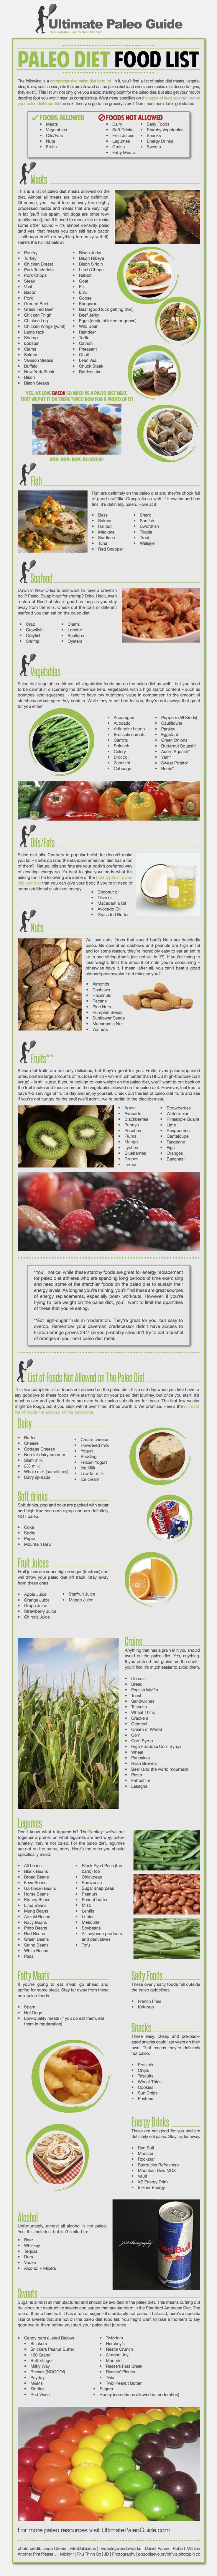 Diabetic eating plan: Healthy food for diabetics ♥ Paleo Diet Plan leads to Health Food Recipes and Good Diet Meals ♥ low carb no carb Recipes, Infographics & DAILY nutritional science news to help you #carbswitch carbswitch.com Please Repin Foods allowed. Foods not allowed.